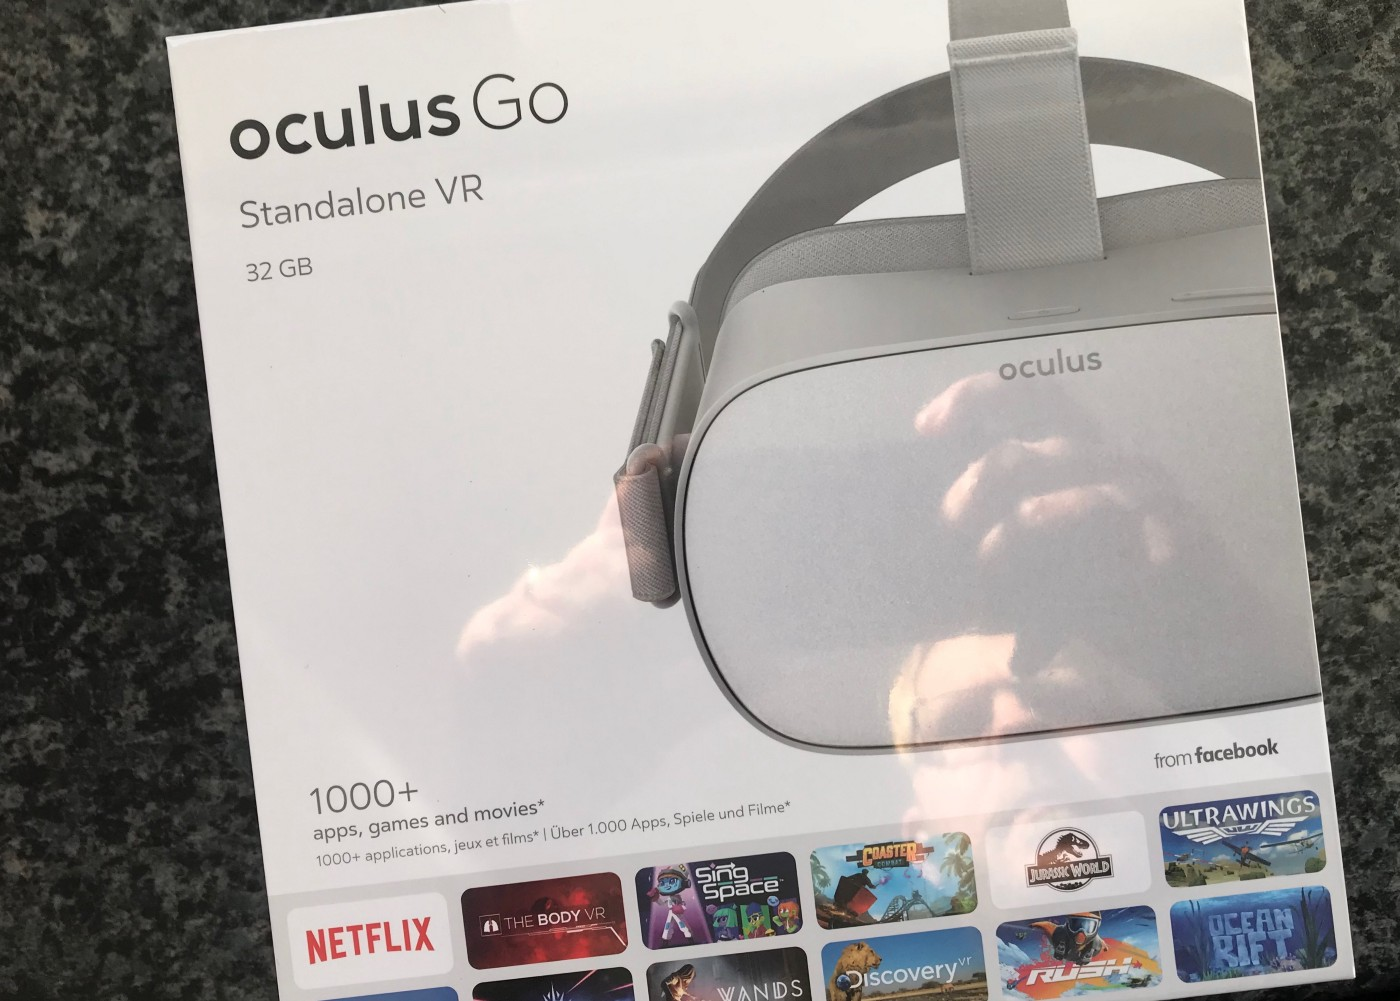 Unboxing and Optimizing for the Oculus Go - AR/VR Journey: Augmented